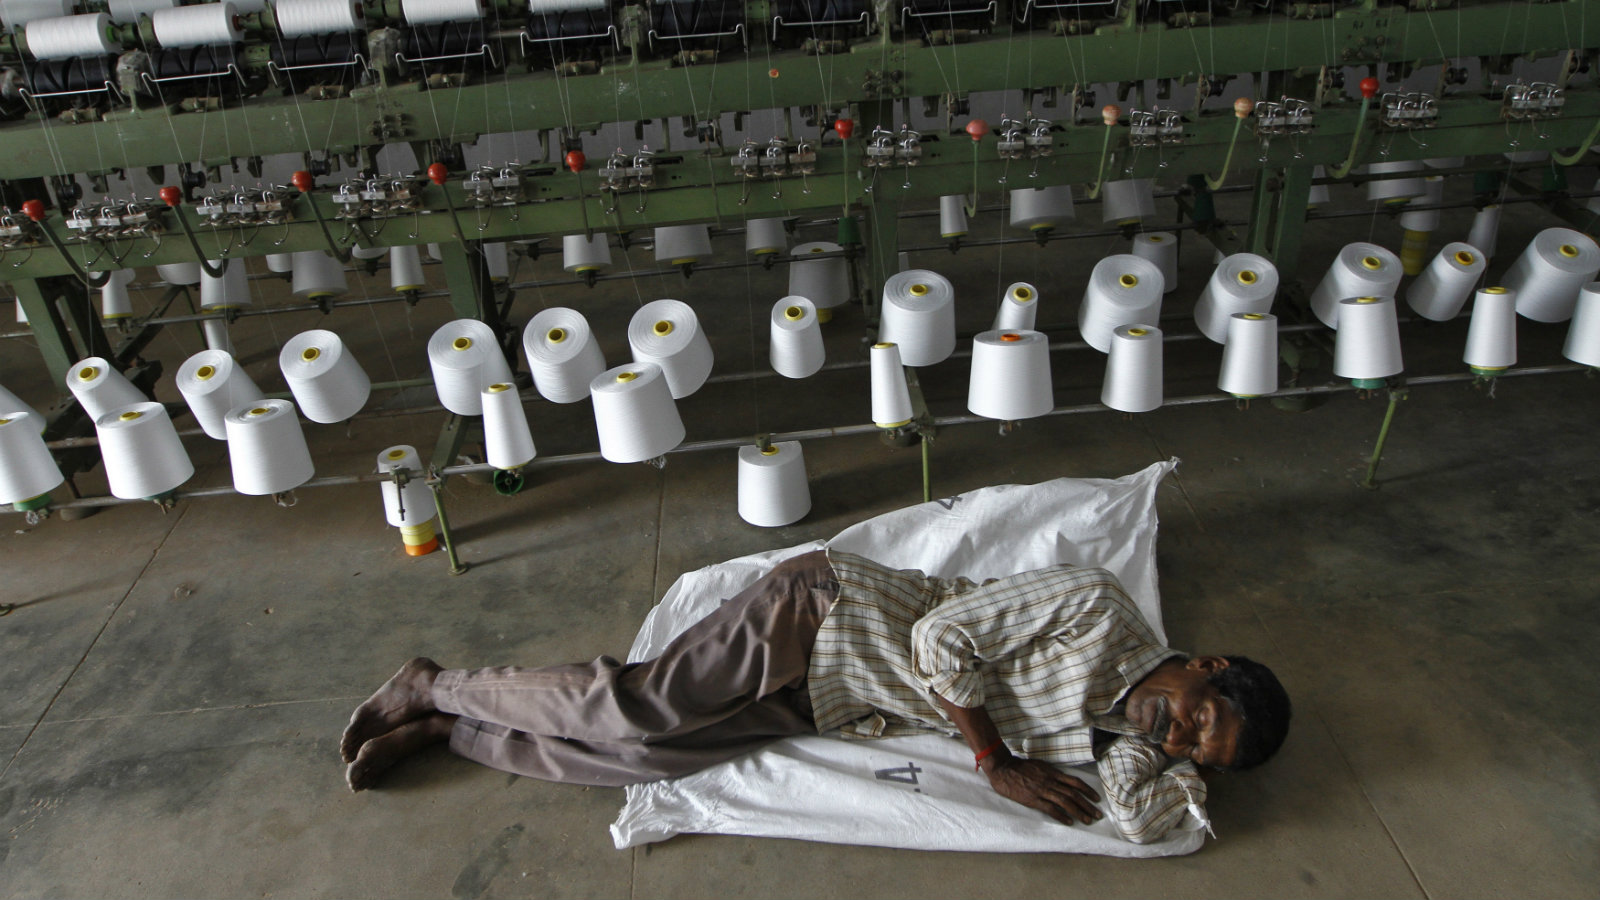 A worker takes a nap during a power cut in front of yarn-spinning equipment inside a factory in Coimbatore, about 500 km (310 miles) from the southern Indian city of Chennai, January 8, 2013. Crippling power cuts in the southern Indian state of Tamil Nadu are shutting factories and threatening an industrial debt crisis that is wrecking its second-largest city's plan to become the country's next business Mecca. Picture taken January 8, 2013.